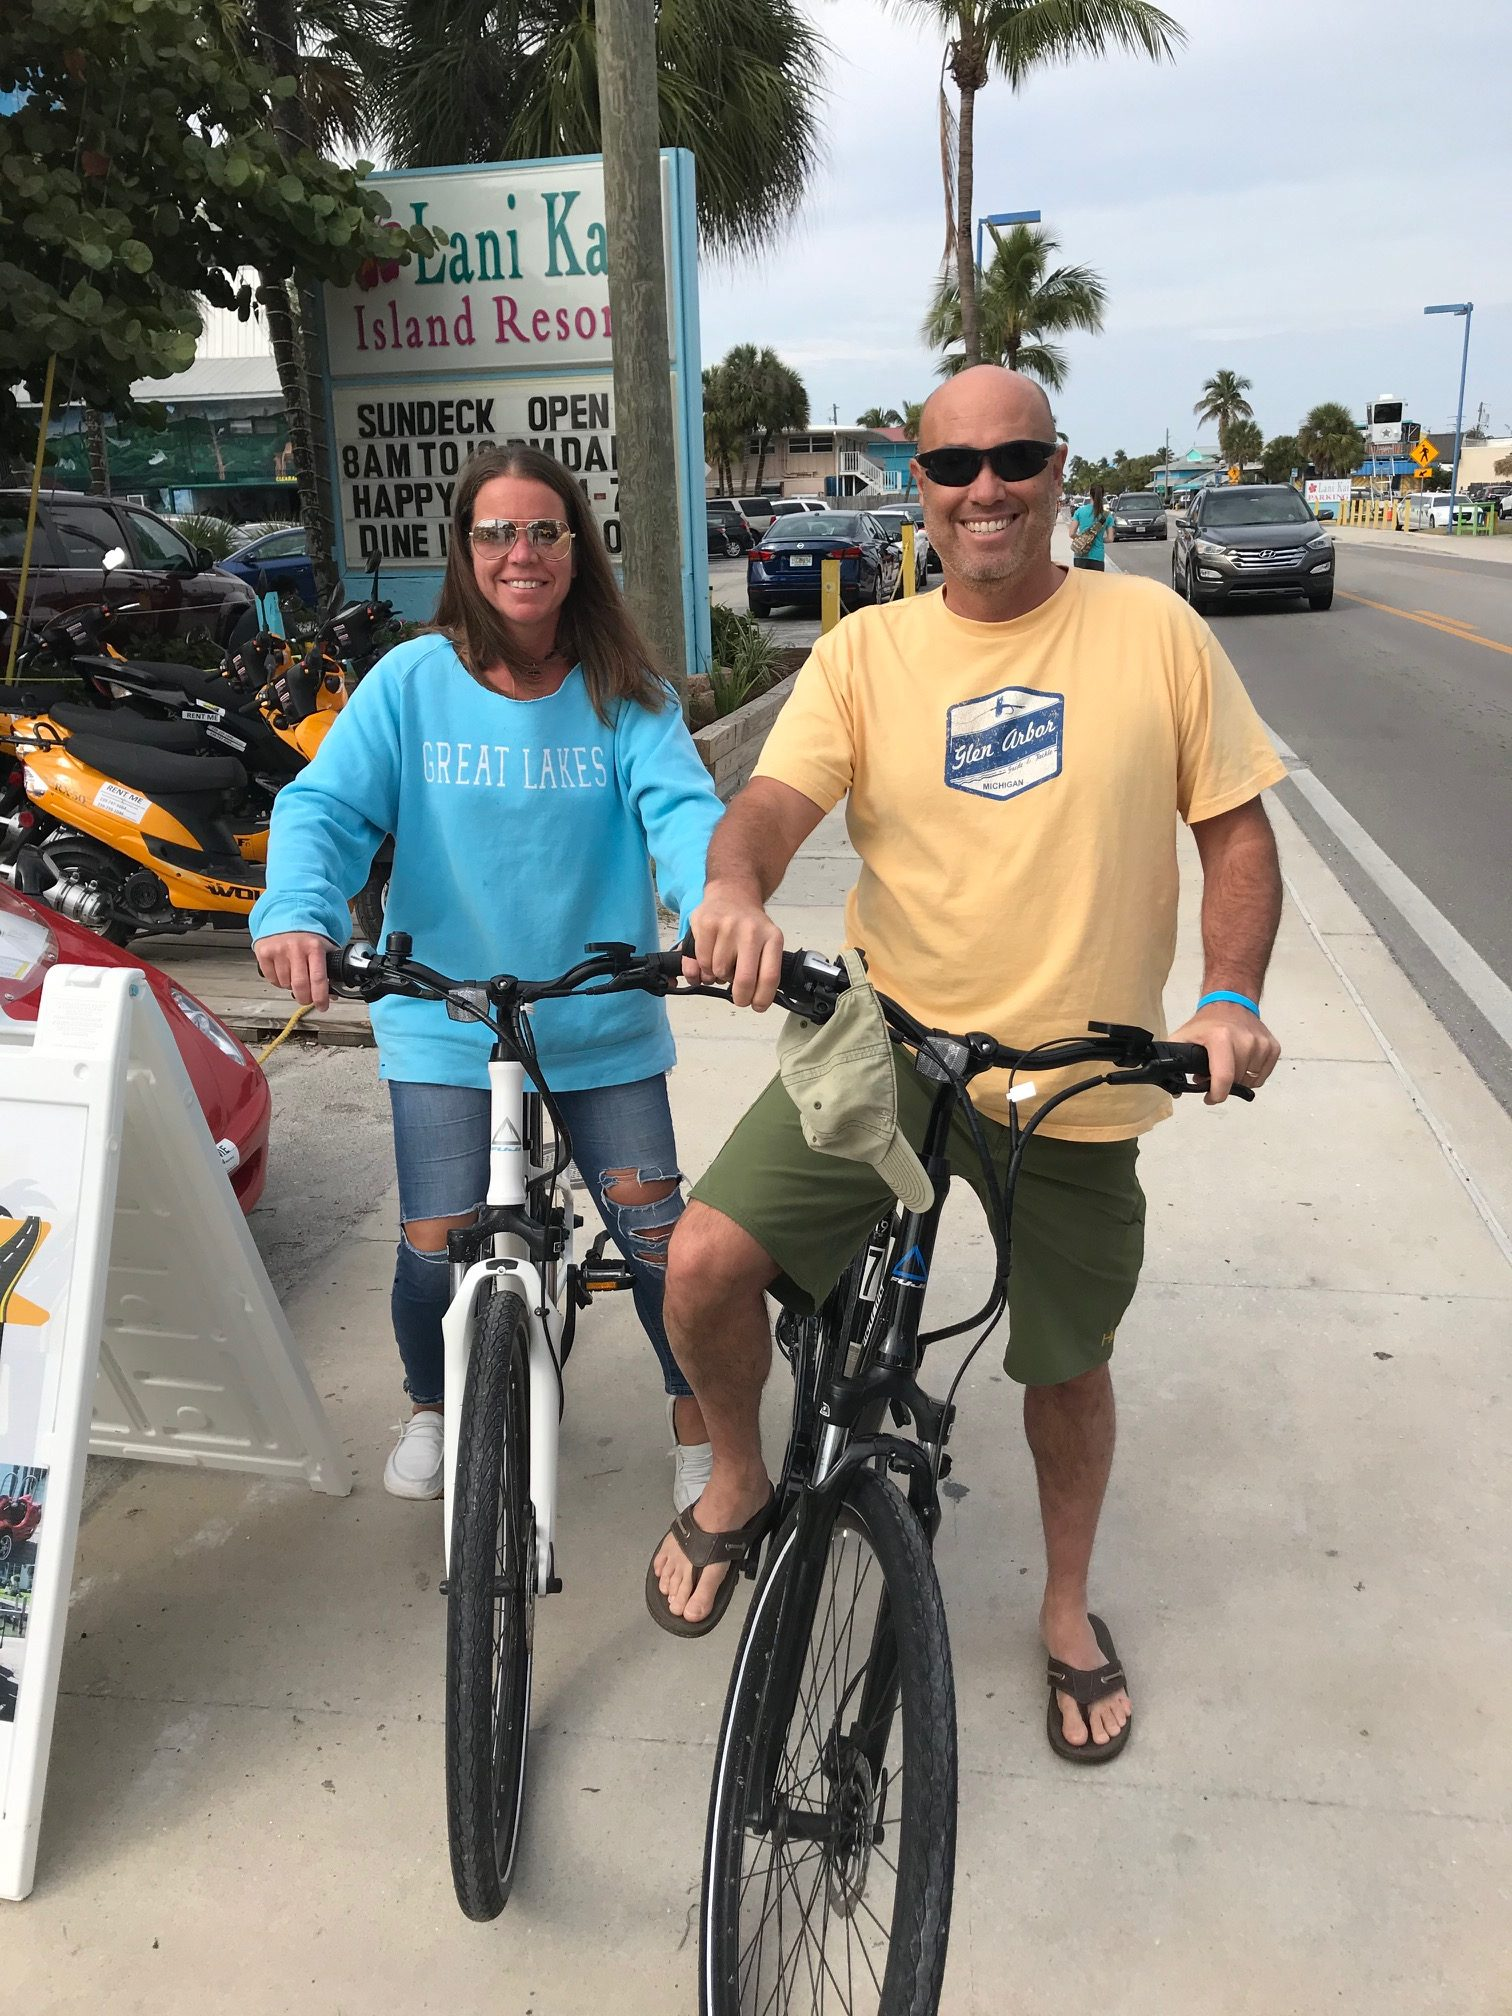 Man and woman on bicycle rentals in Marco Island